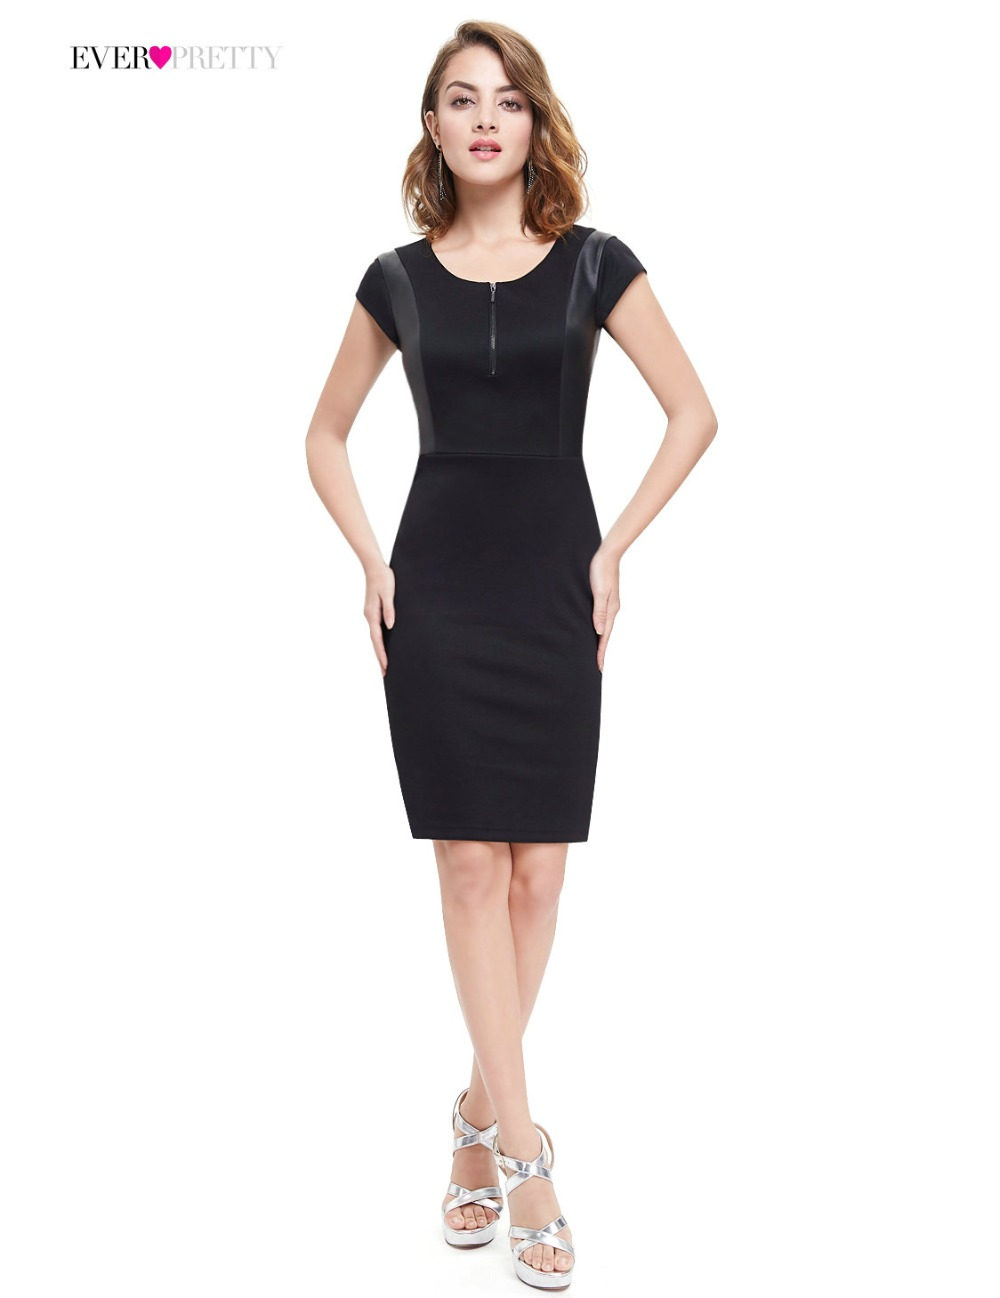 [Clearance Sale]   Cocktail     Dress   Ever Pretty HE05306 Women A-line Hot Sale Affordable Medium Stretch Elegant   Cocktail     Dresses